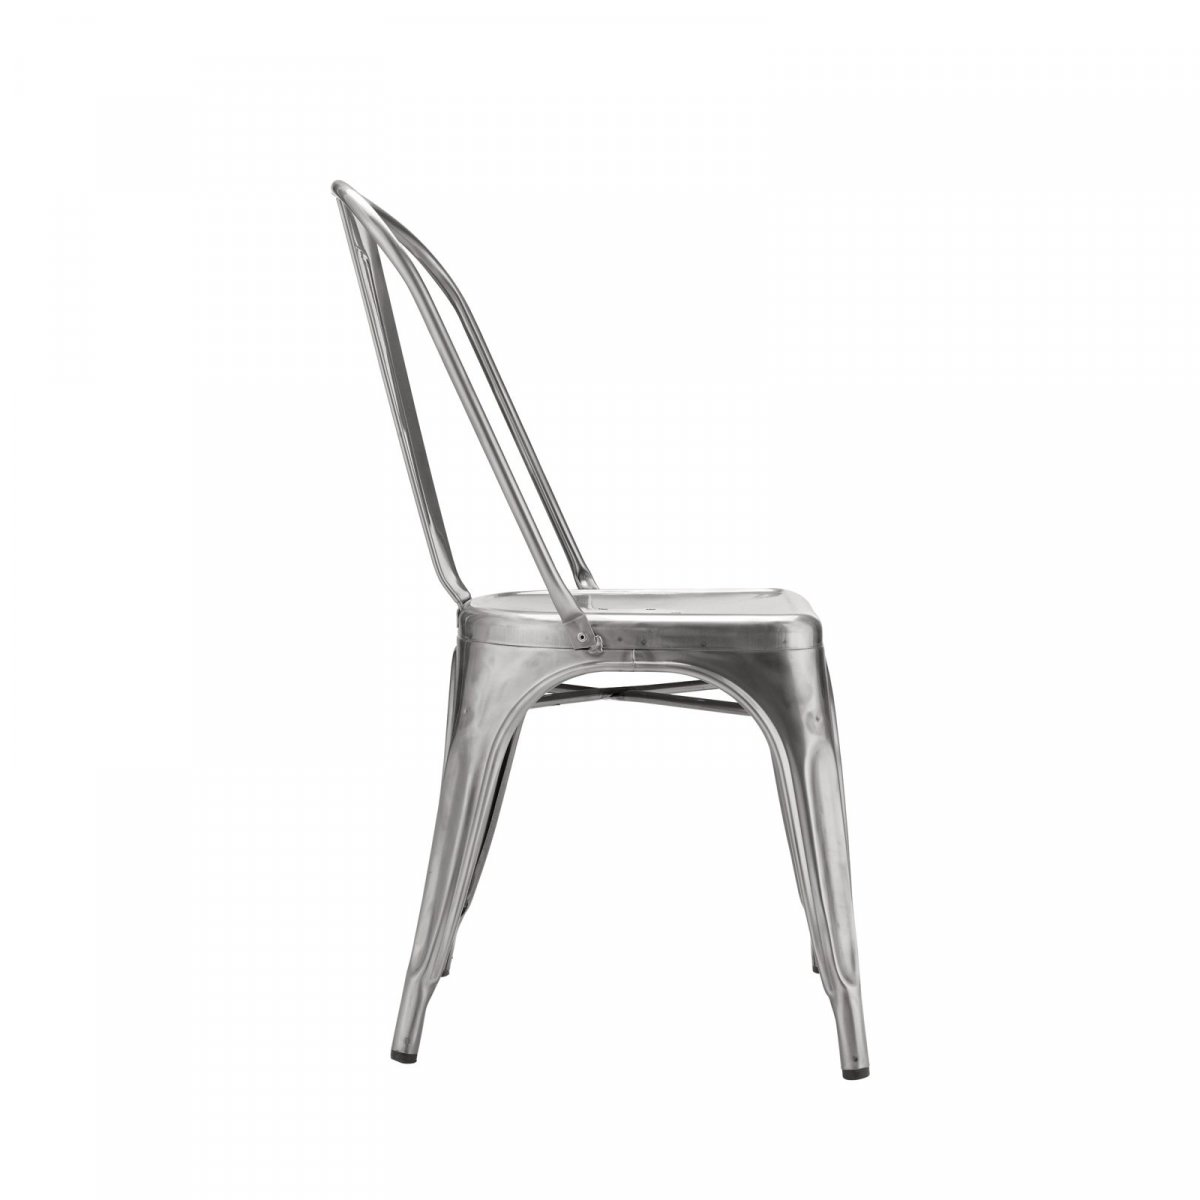 A Chair, side view.